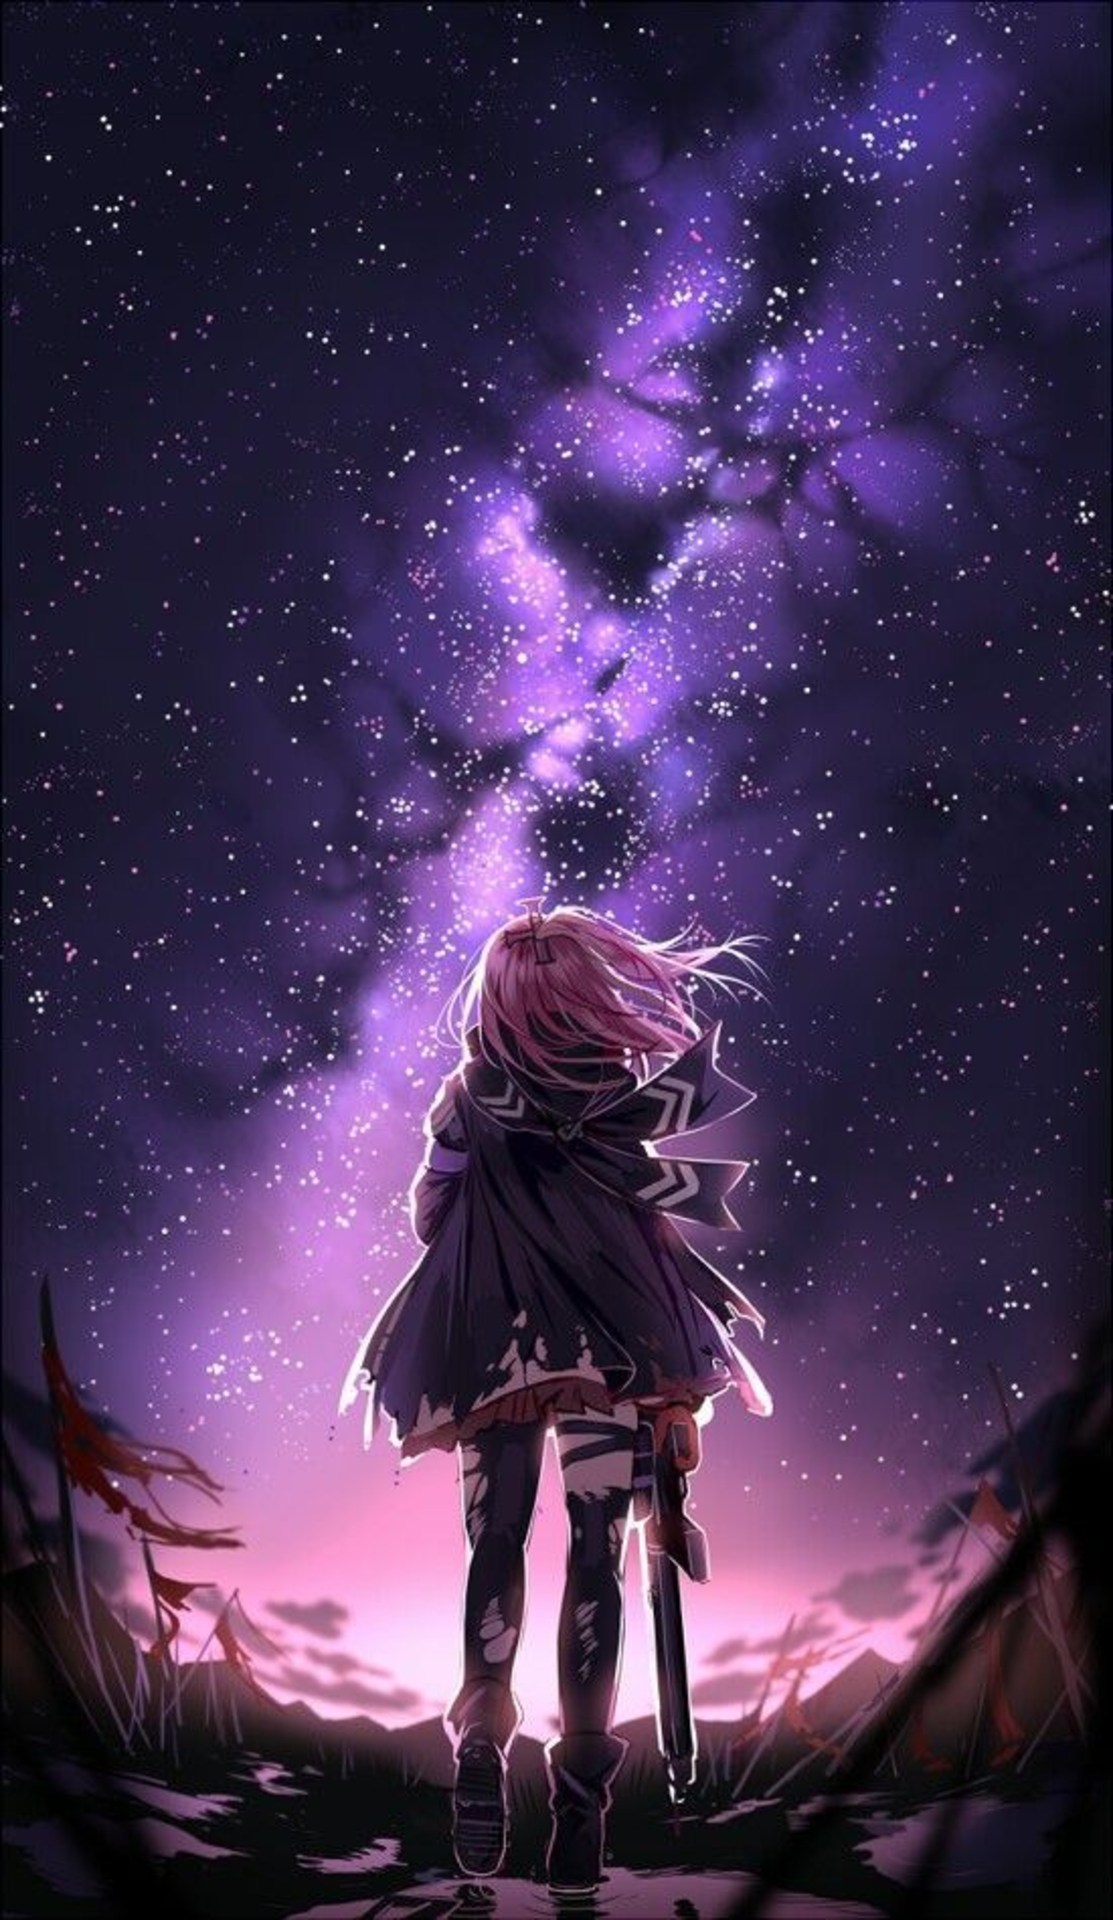 Anime Wallpaper Iphone Anime Wallpaper K Anime Wal By Foreverll On